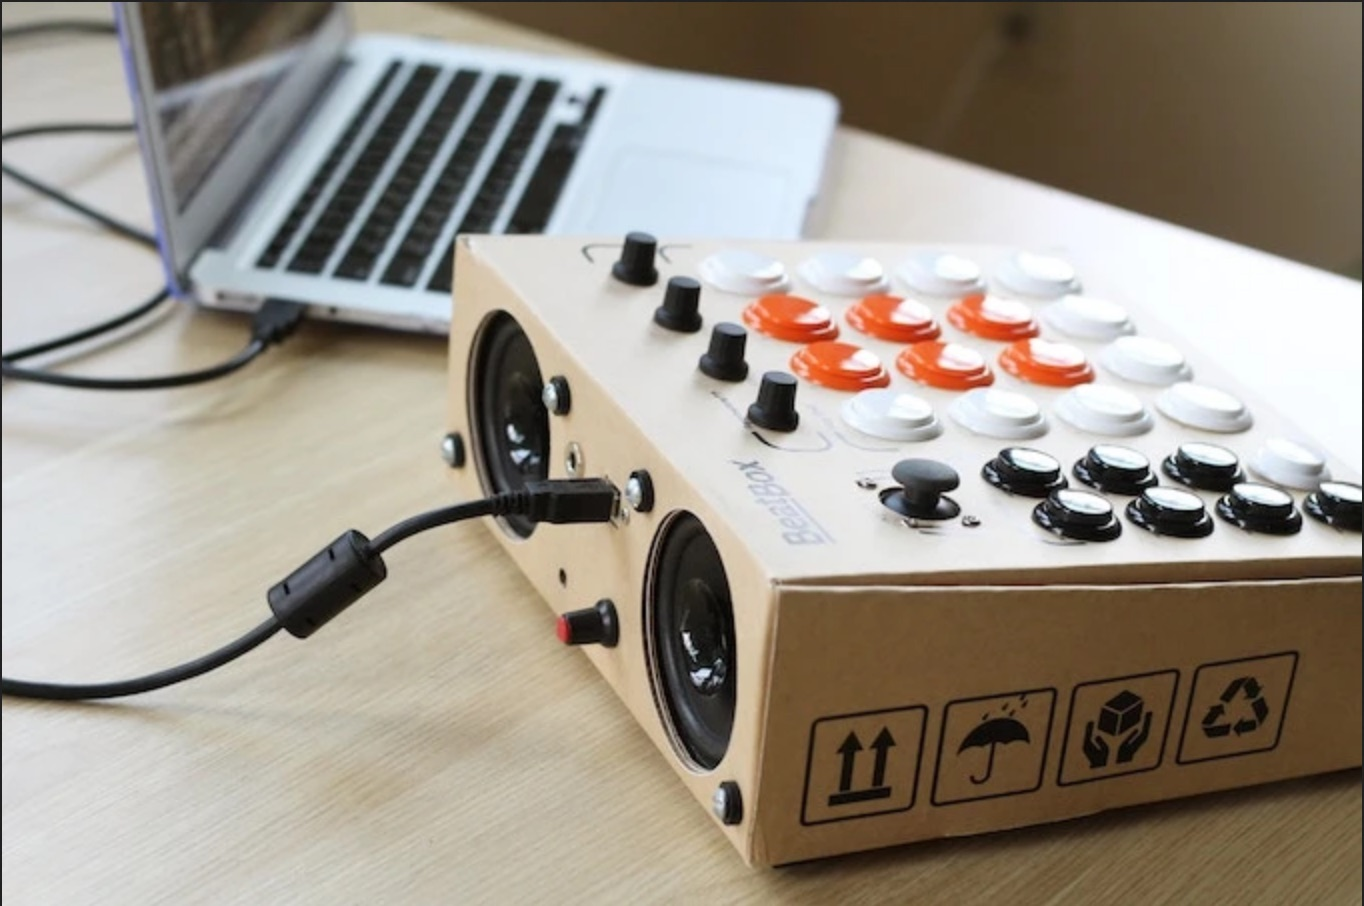 beatbox controller all-in-one